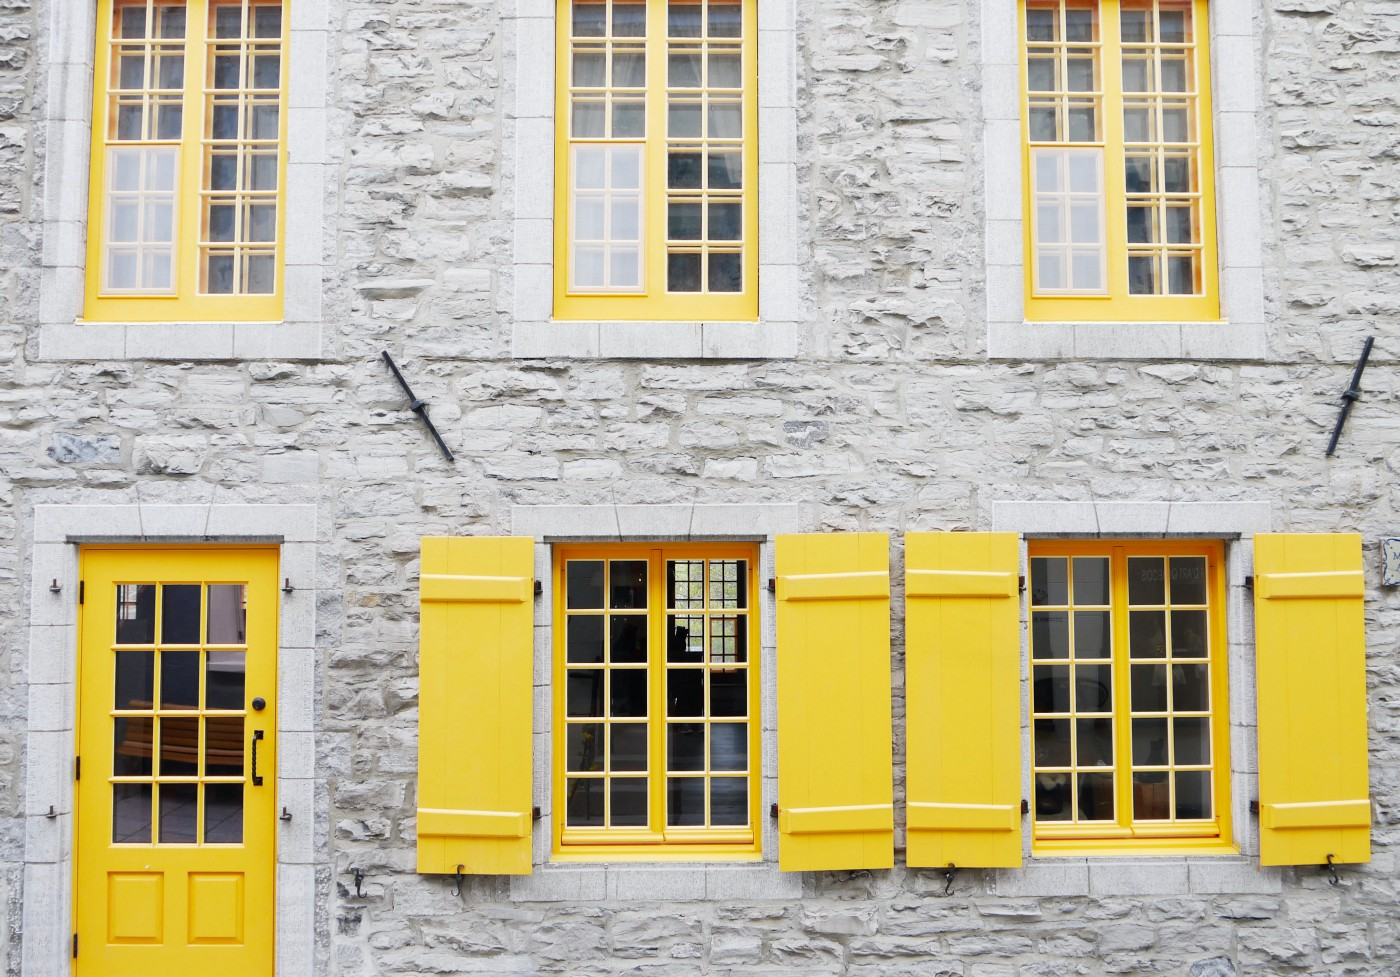 yellow windows on an old stone building